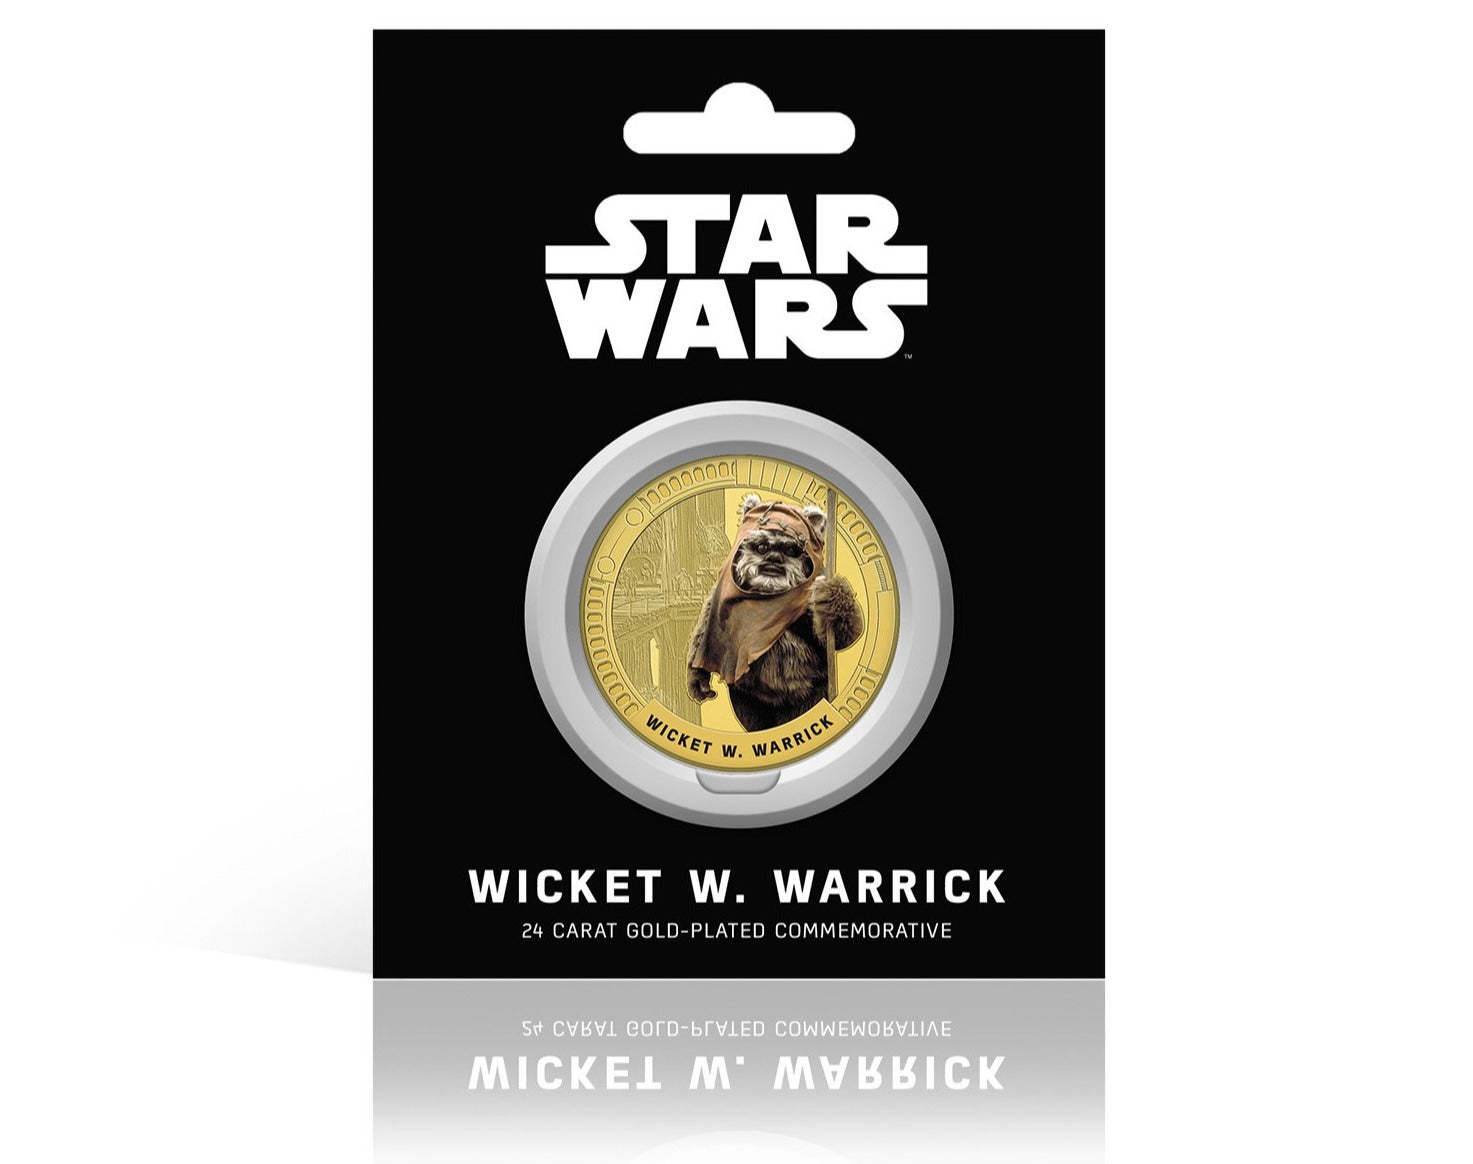 Star Wars Trilogía Original Episodios IV - VI - Wicket W. Warrick - Moneda / Medalla conmemorativa acuñada con baño en Oro 24 quilates y coloreada a 4 colores - 44mm